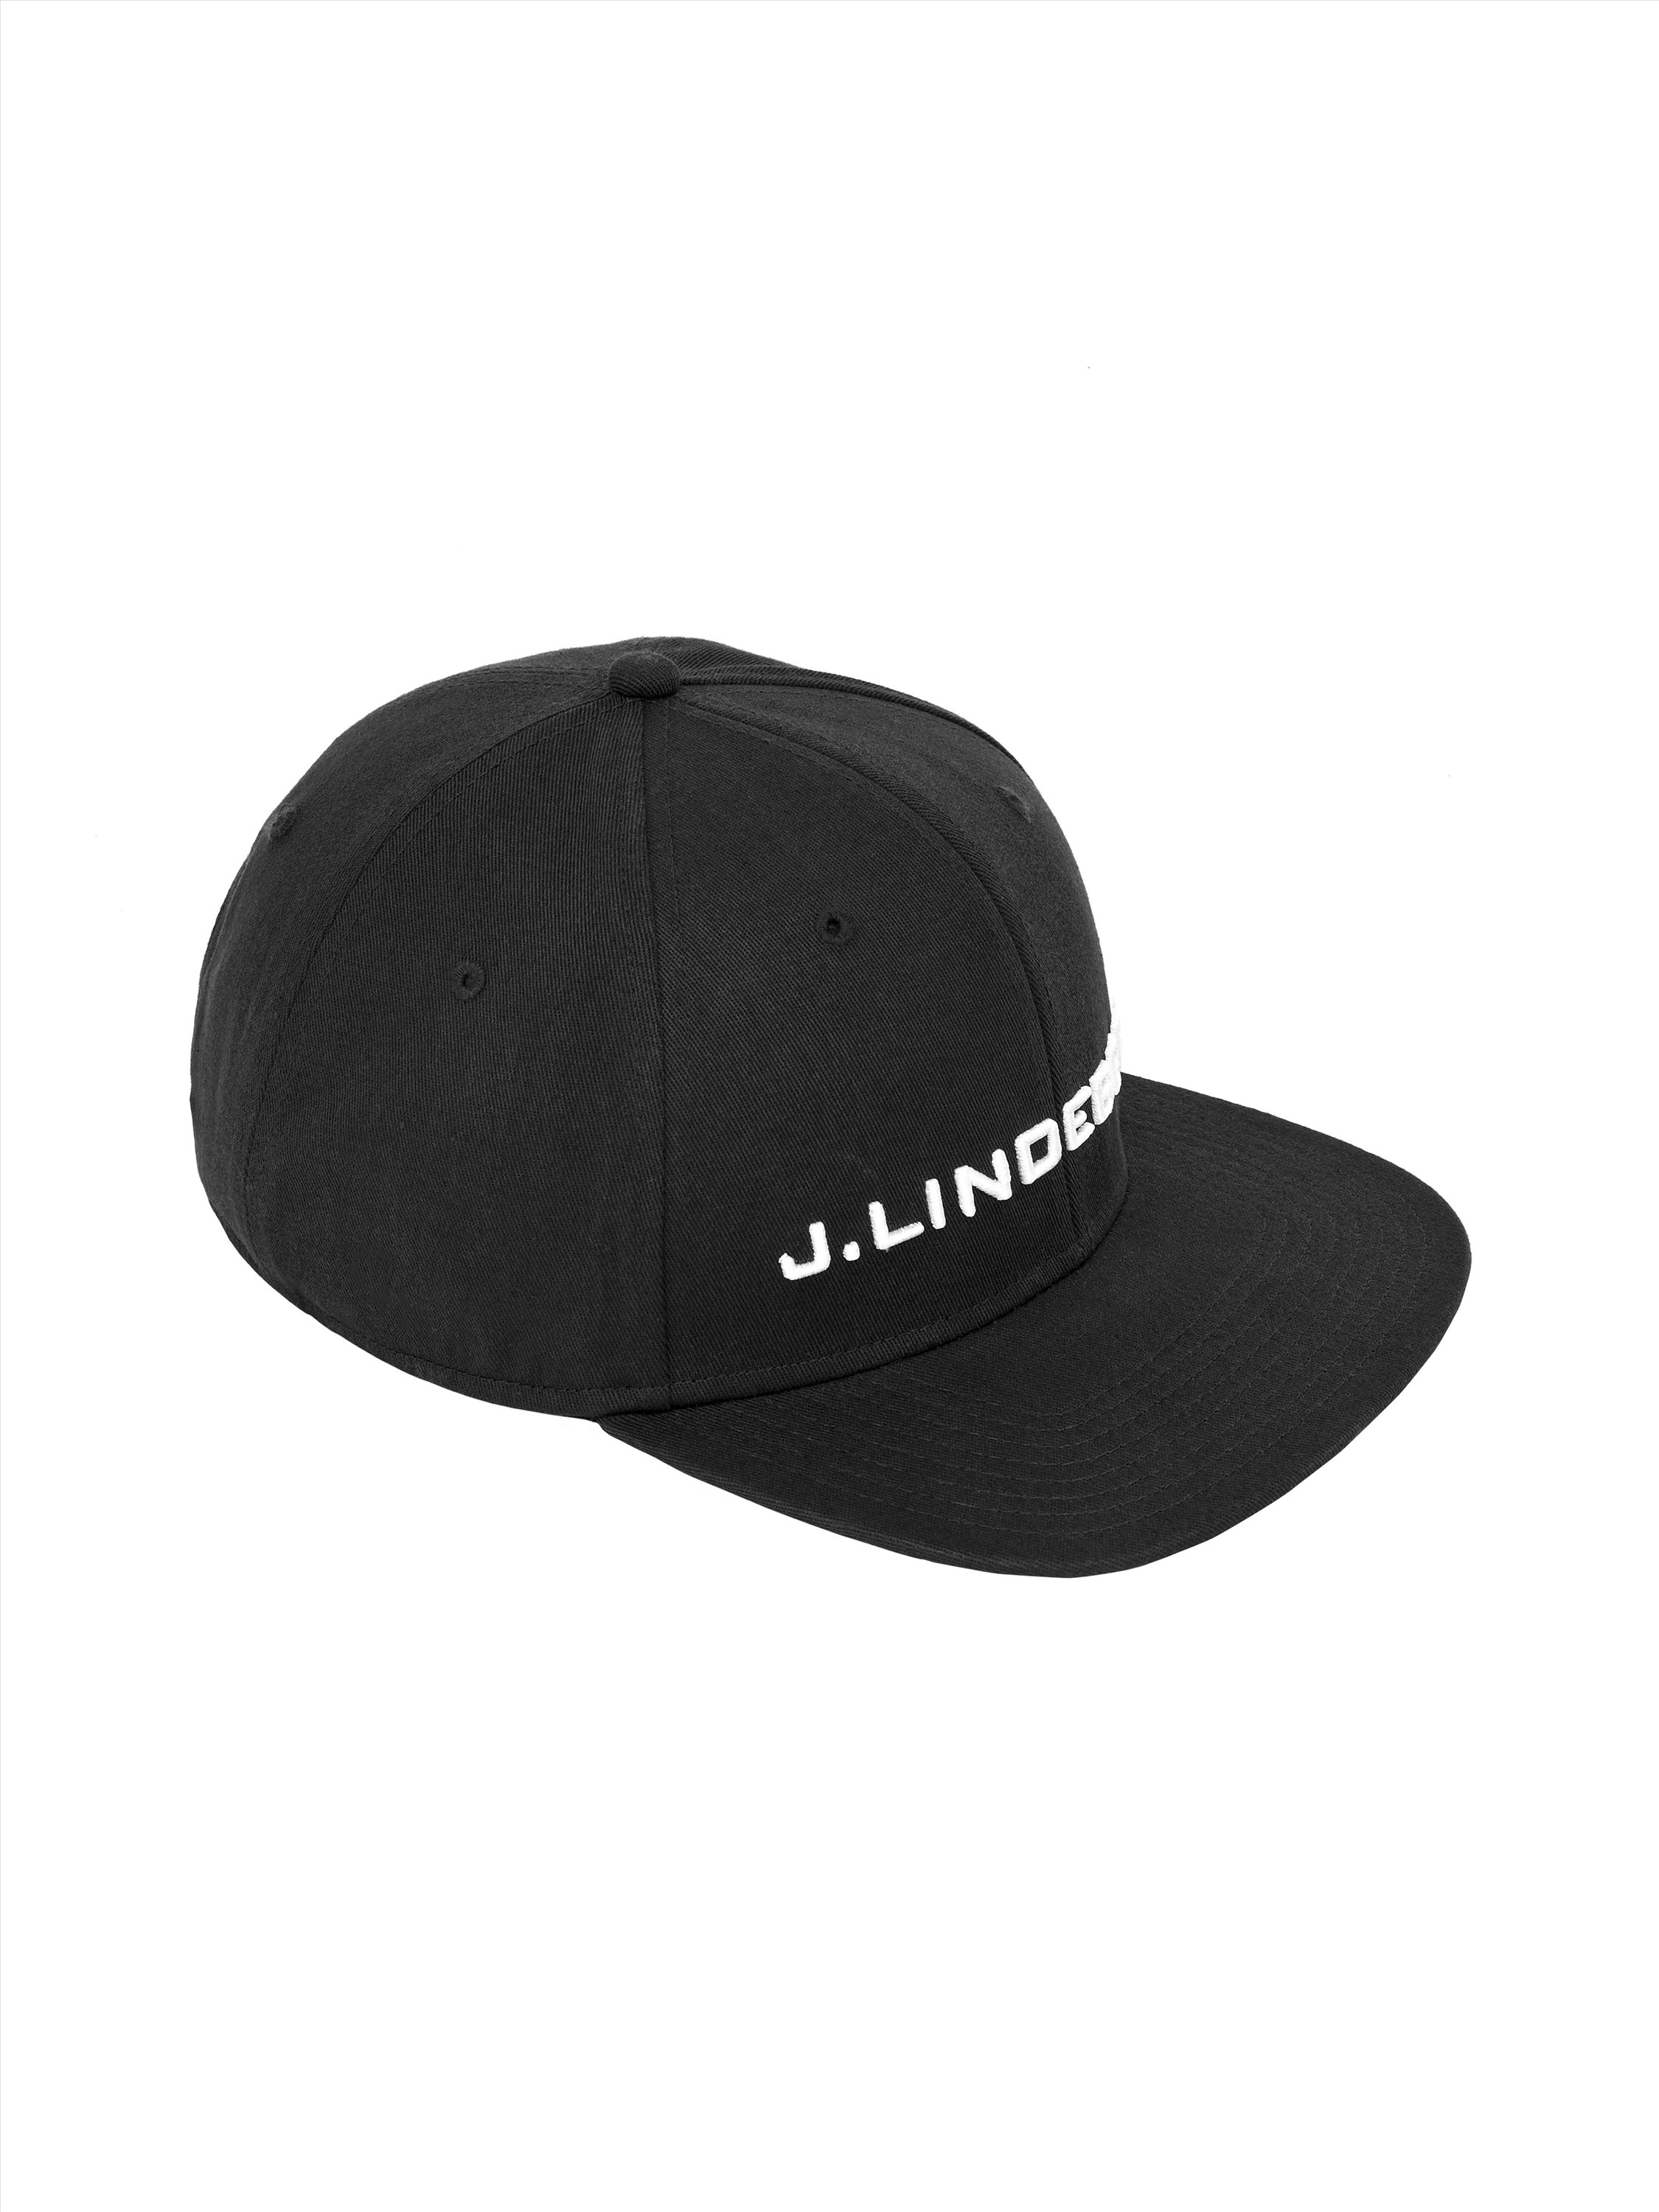 """bb8b9312858 Cotton twill cap in a modern low-cut rise with an embroidered """"J.Lindeberg""""  at center front and plastic closure at back. - Plastic closure at back"""